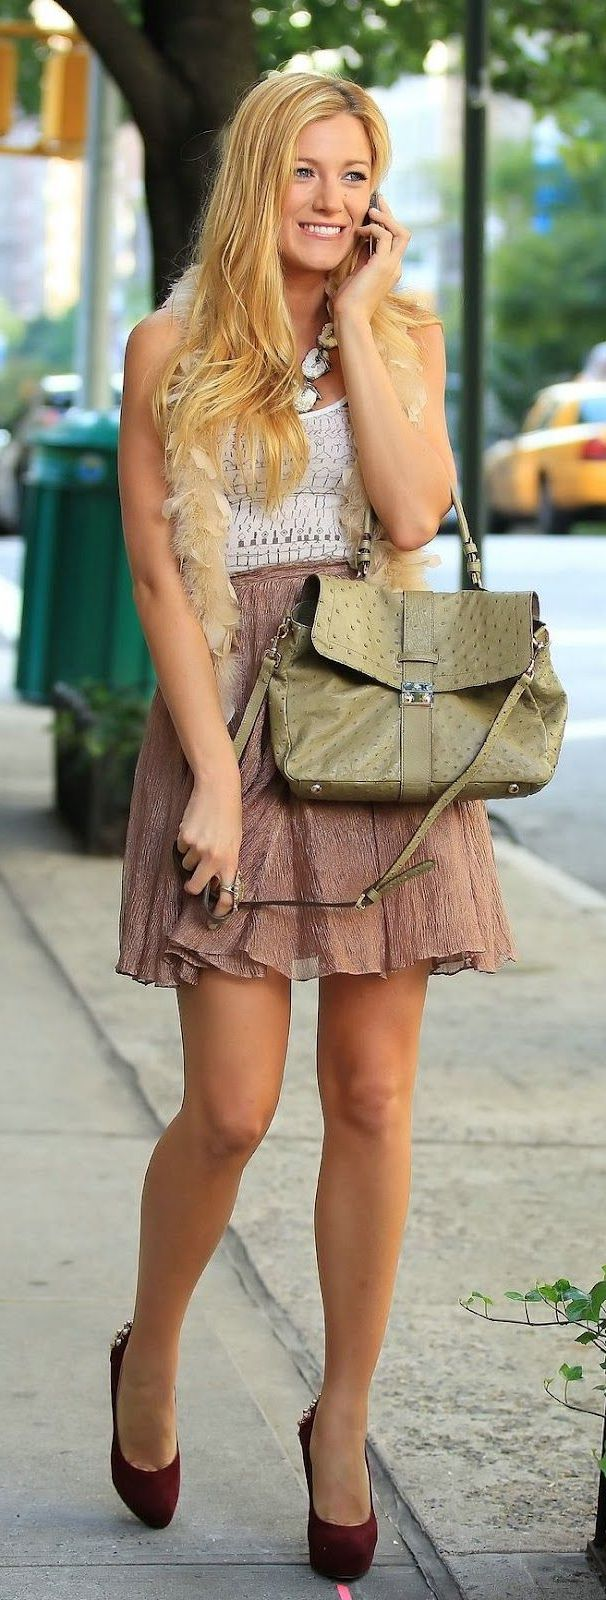 Easy ways To Wear Tank Tops For Women In Real Life 2021